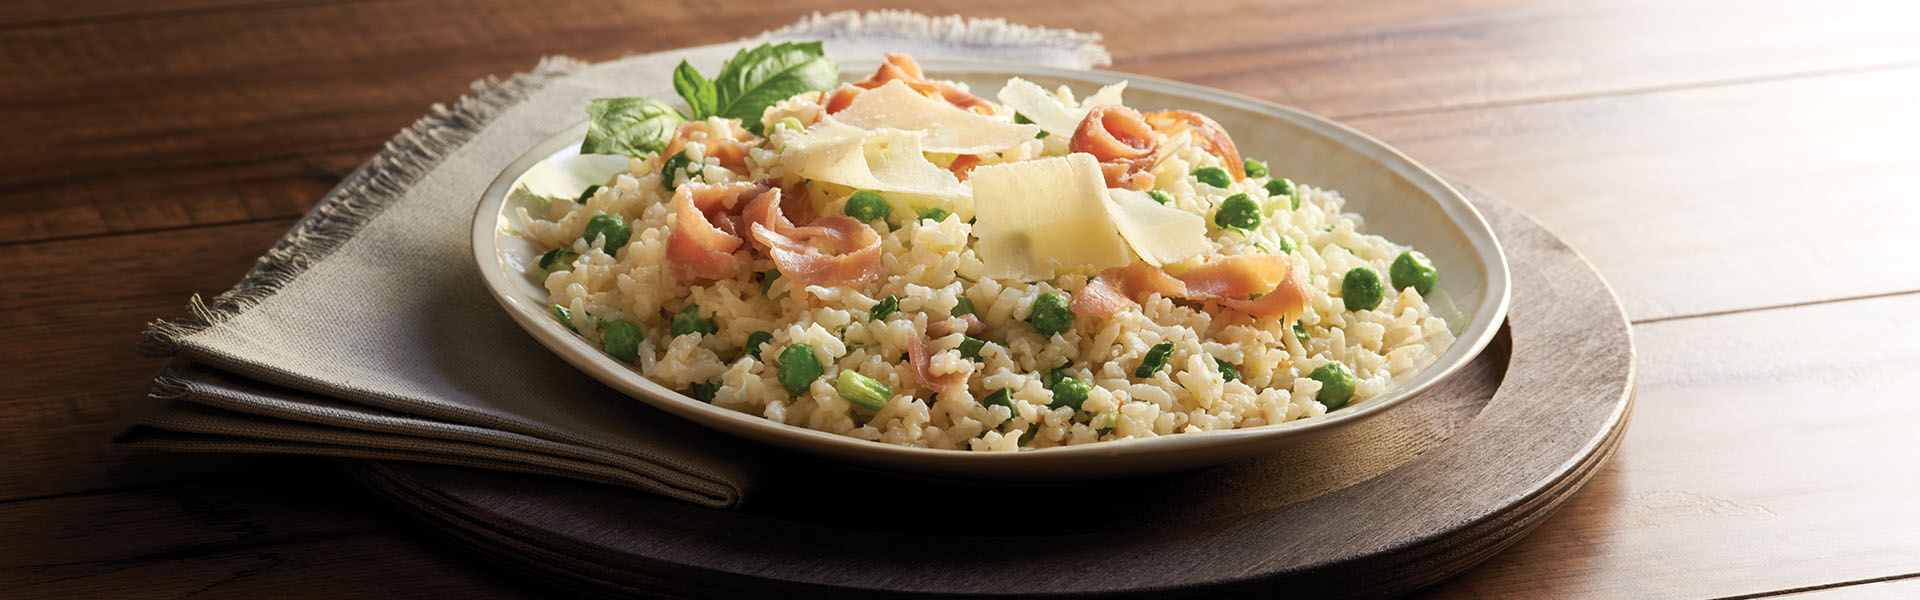 Prosciutto and Green Pea Risotto